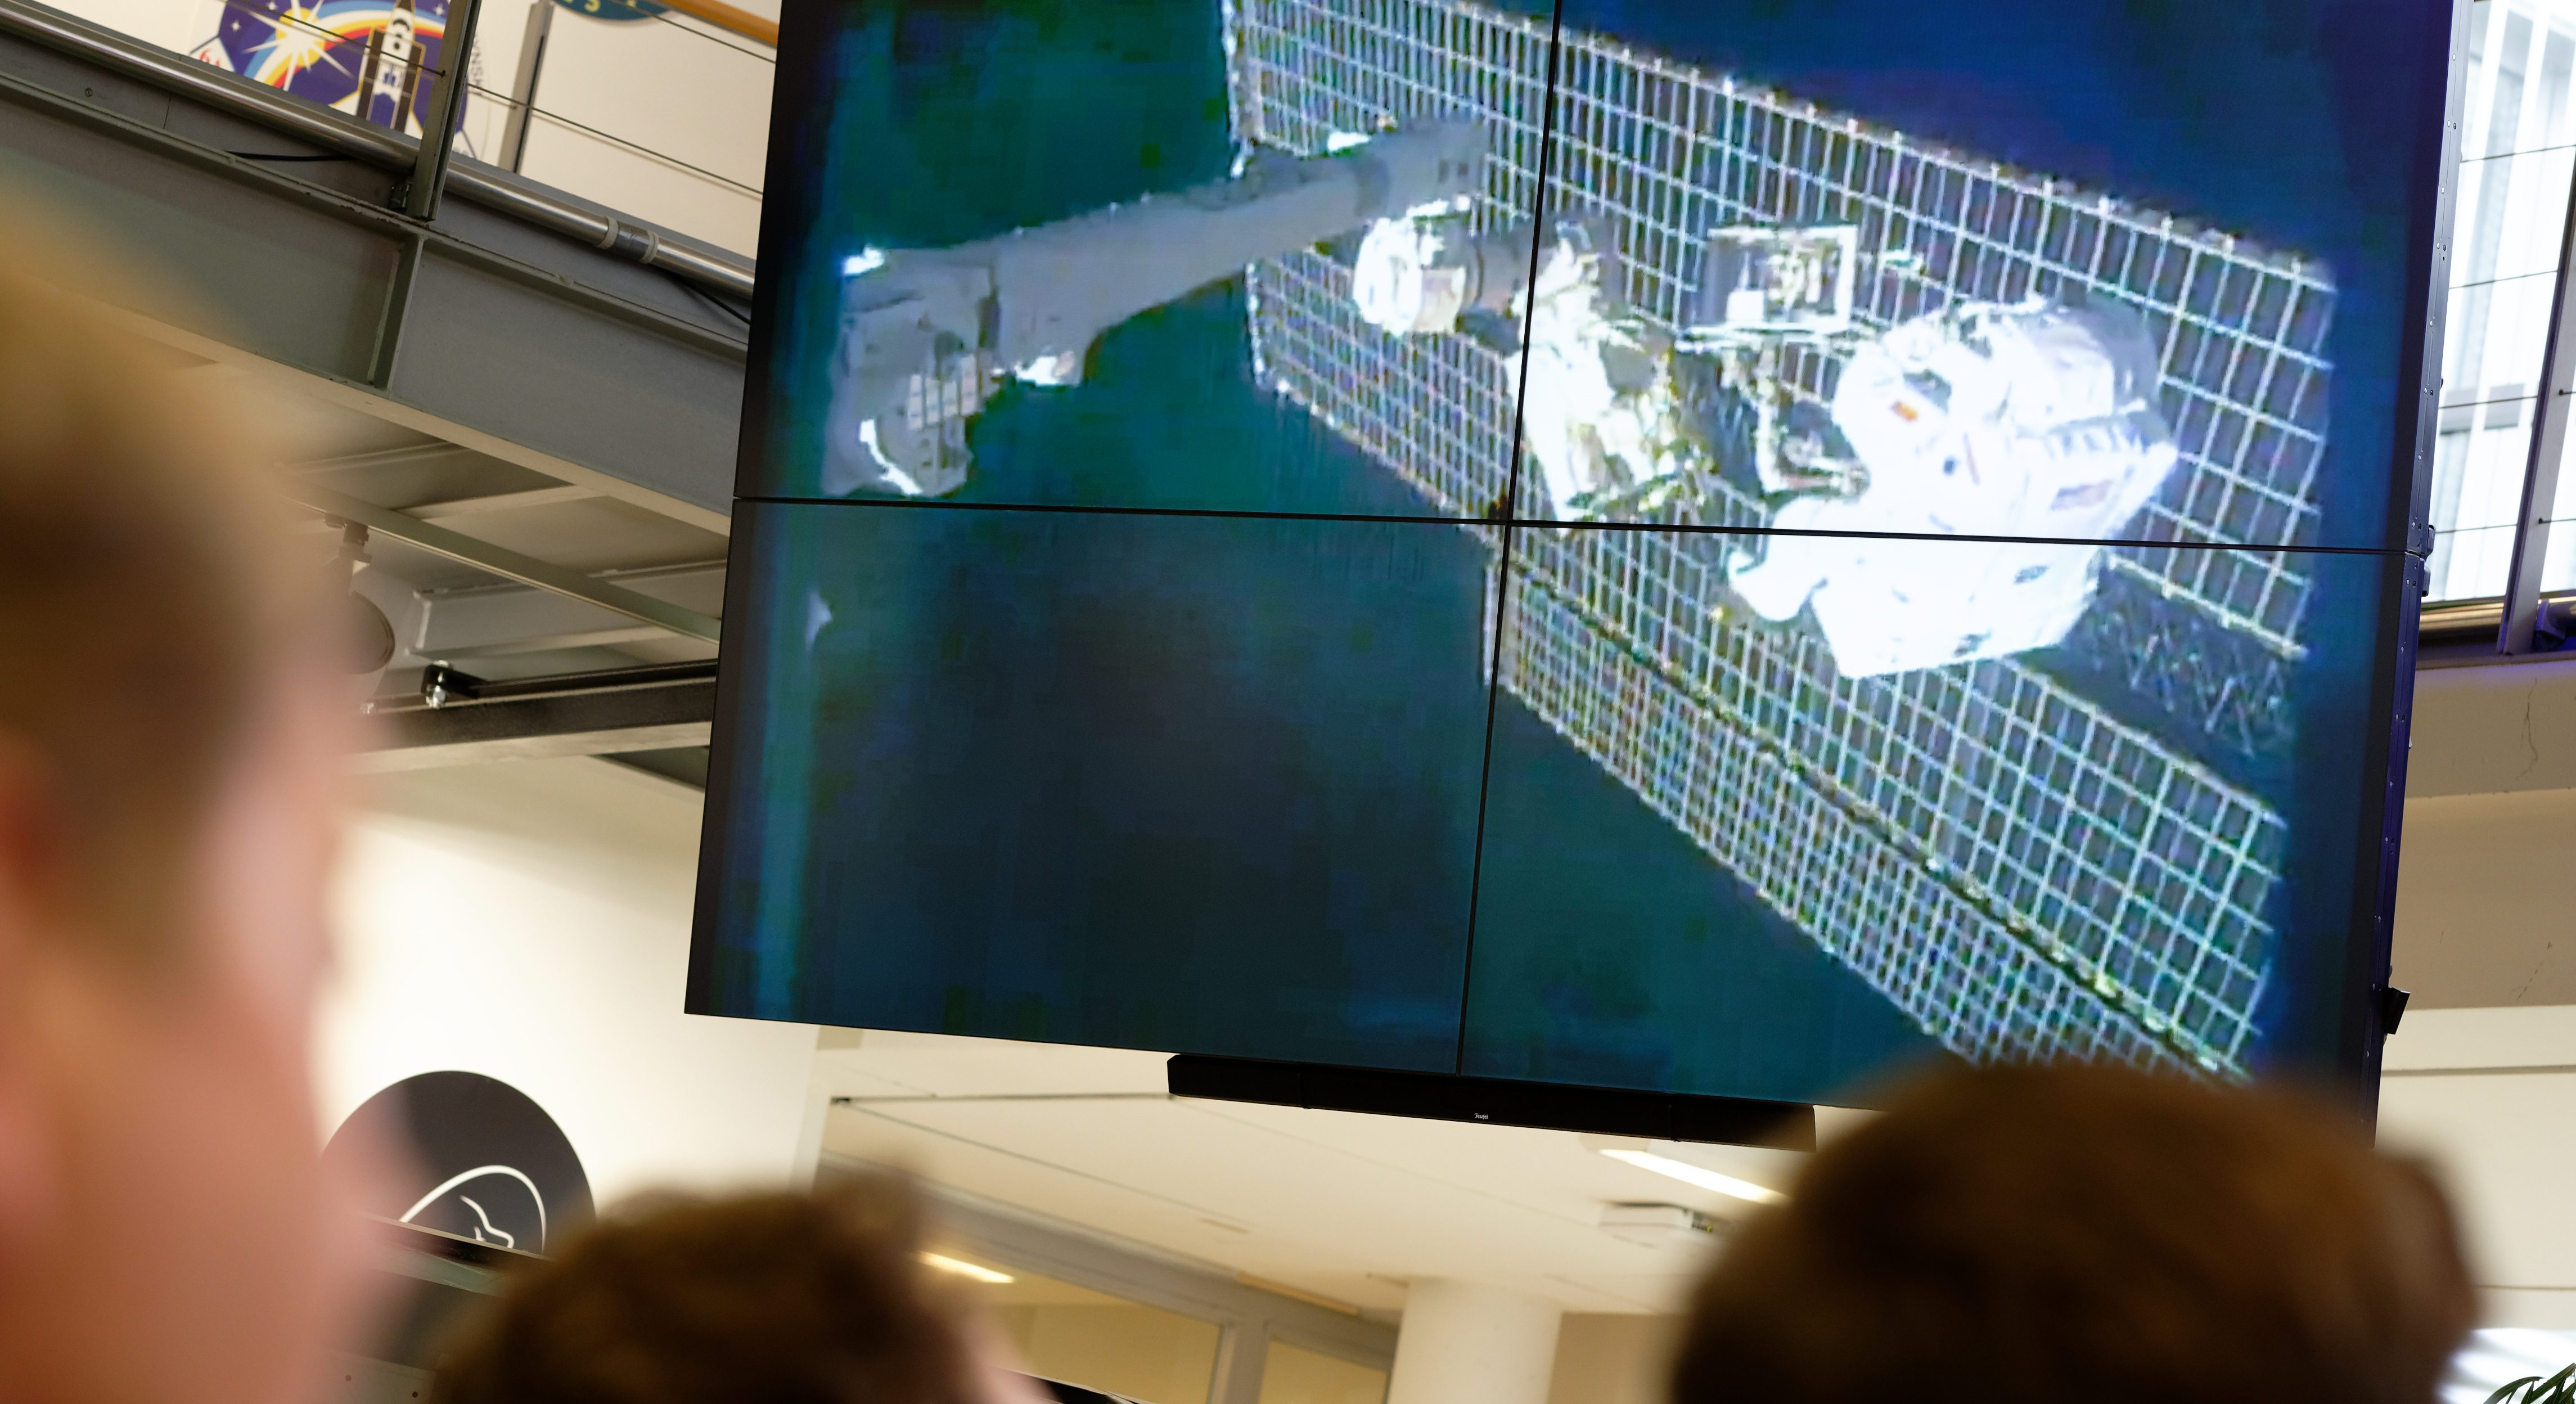 ESA astronaut Luca Parmitano seen floating on a robotic arm above the ISS space station in a video feed at an event at the European Astronaut Centre on Nov. 15, 2019.